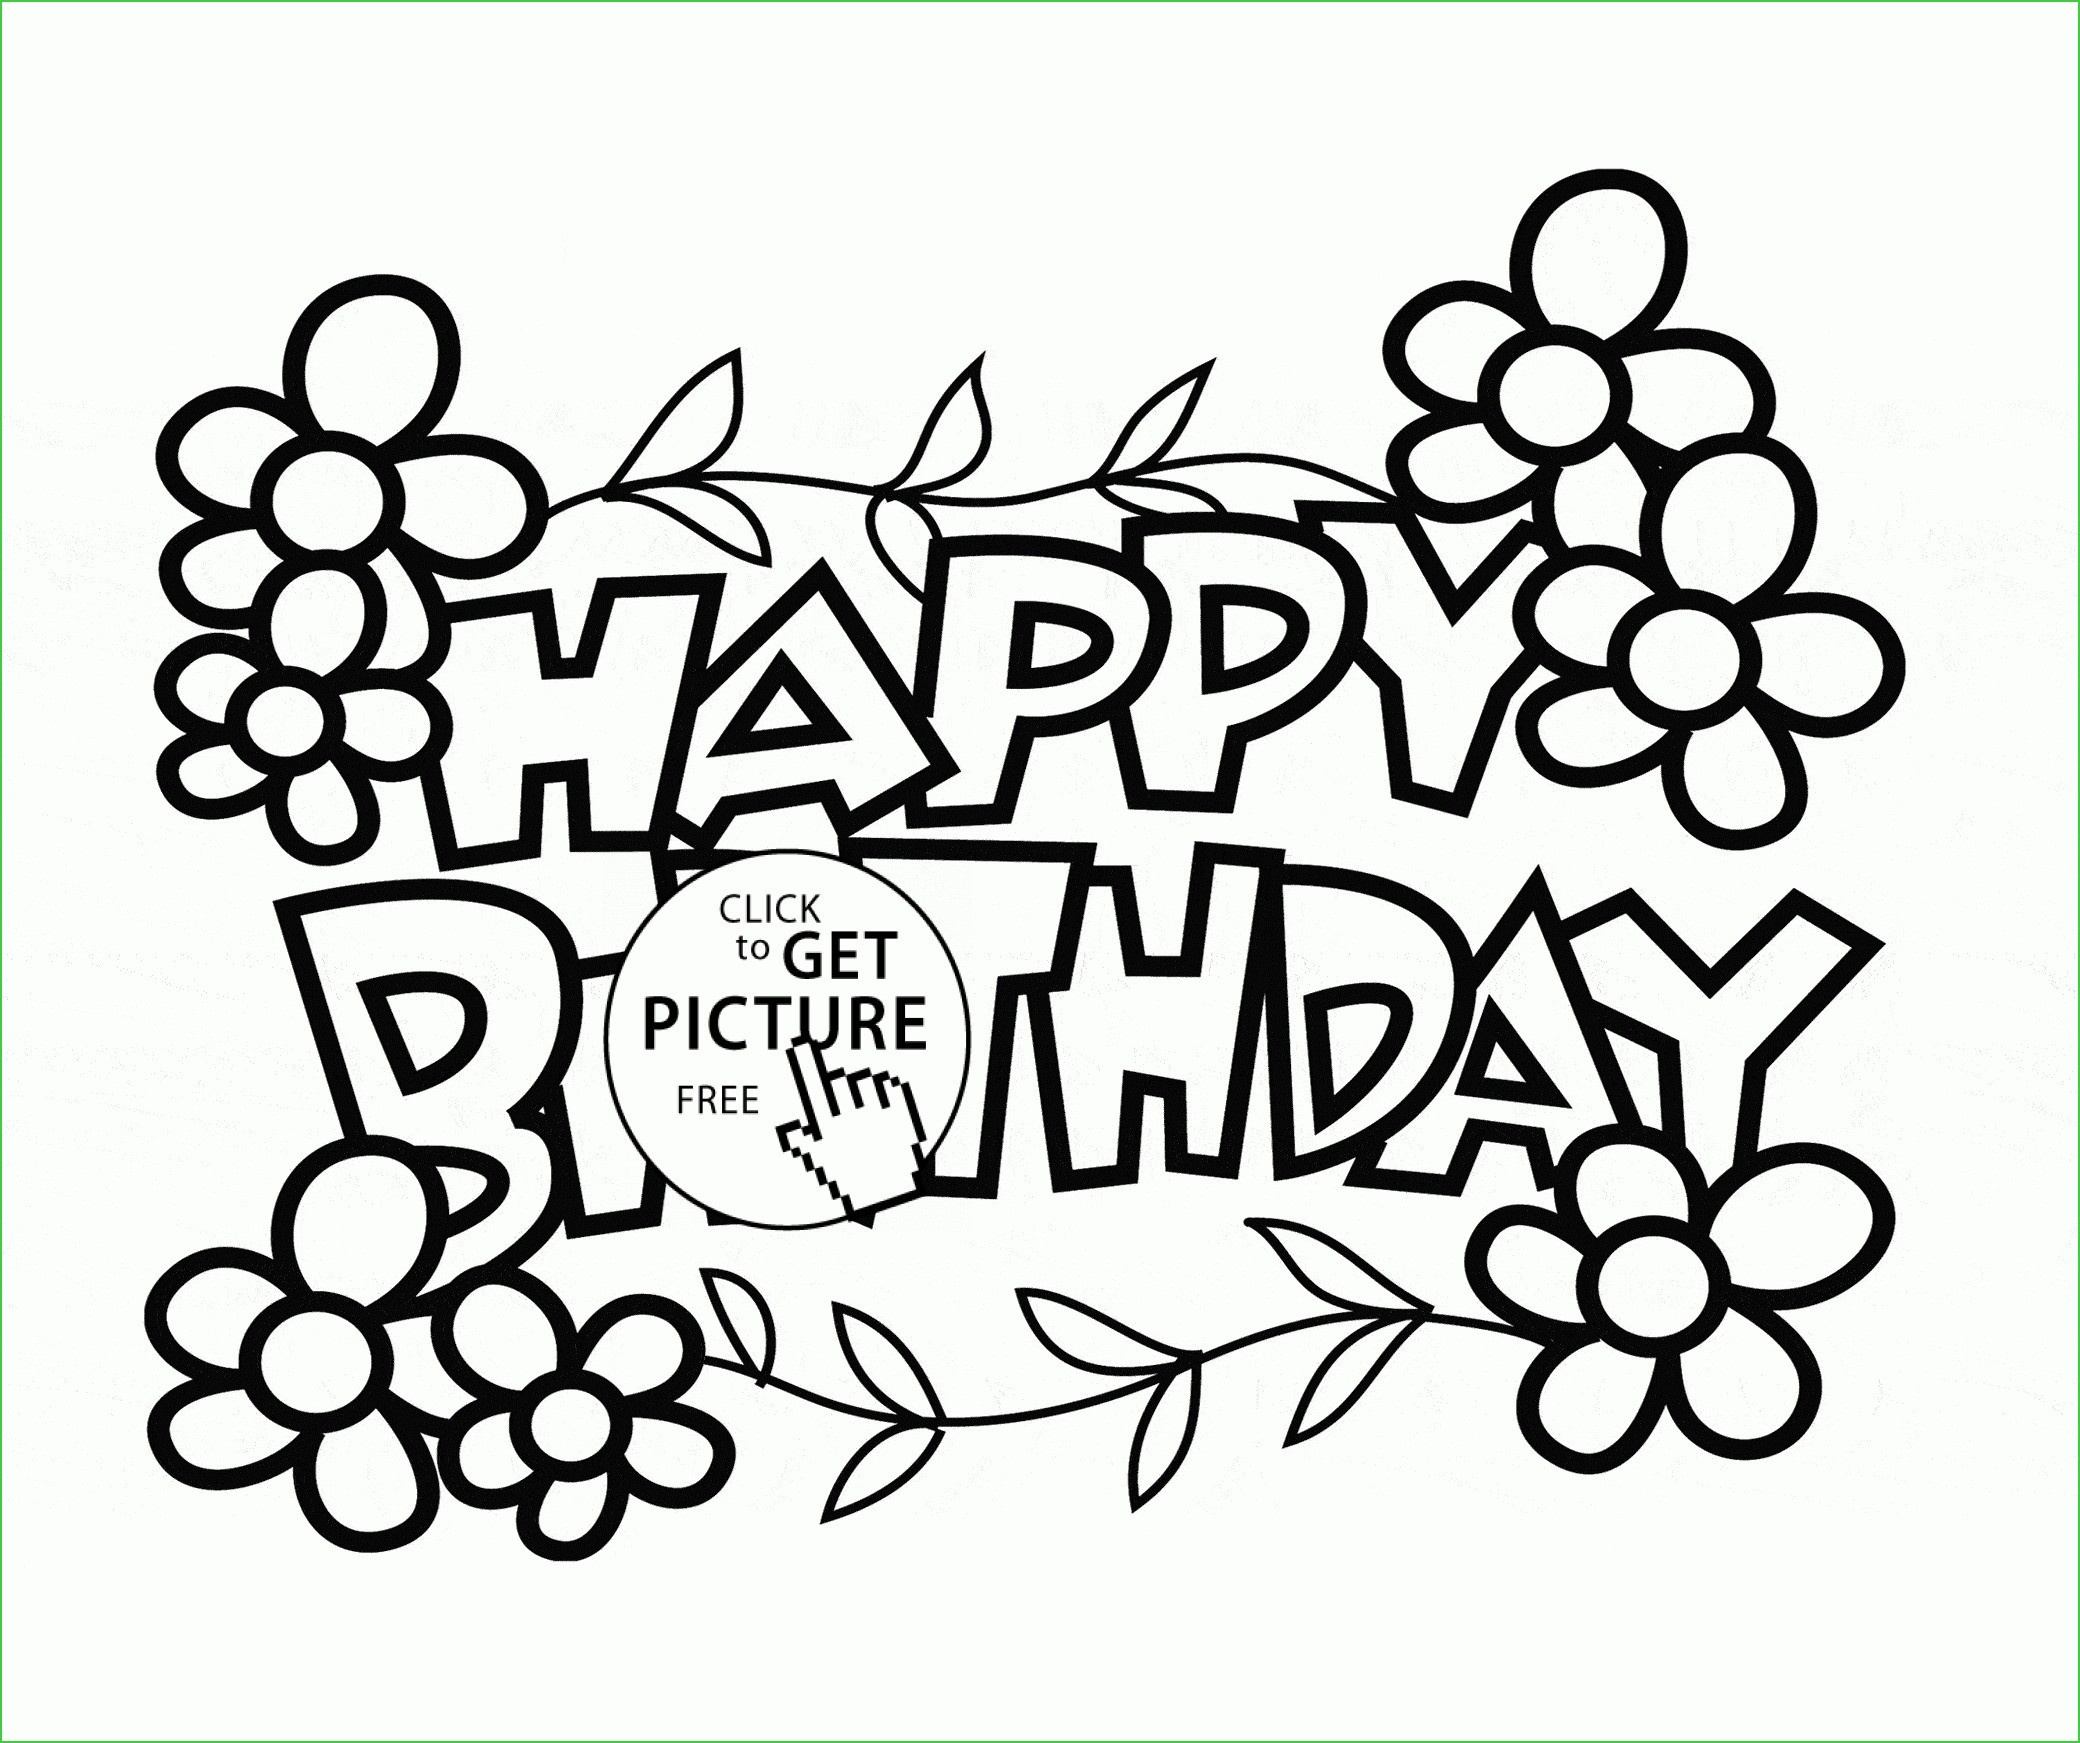 Happy Birthday Drawings For Card | Free Download Best Happy Birthday - Free Printable Birthday Cards To Color